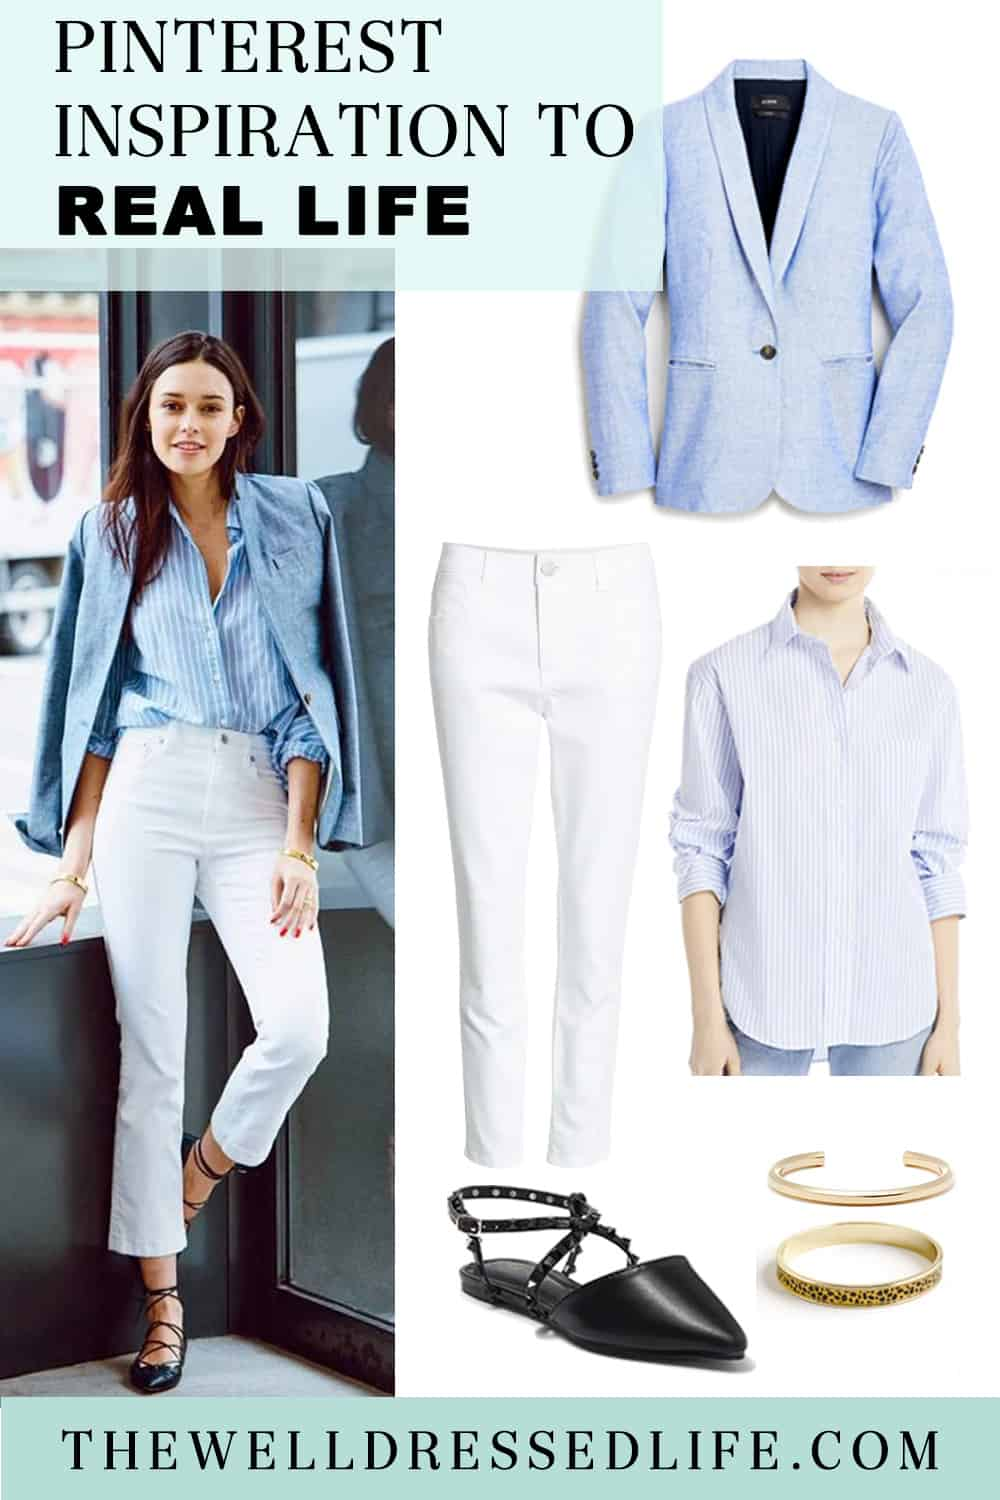 Pinterest in Real Life: A Fresh Workwear Look